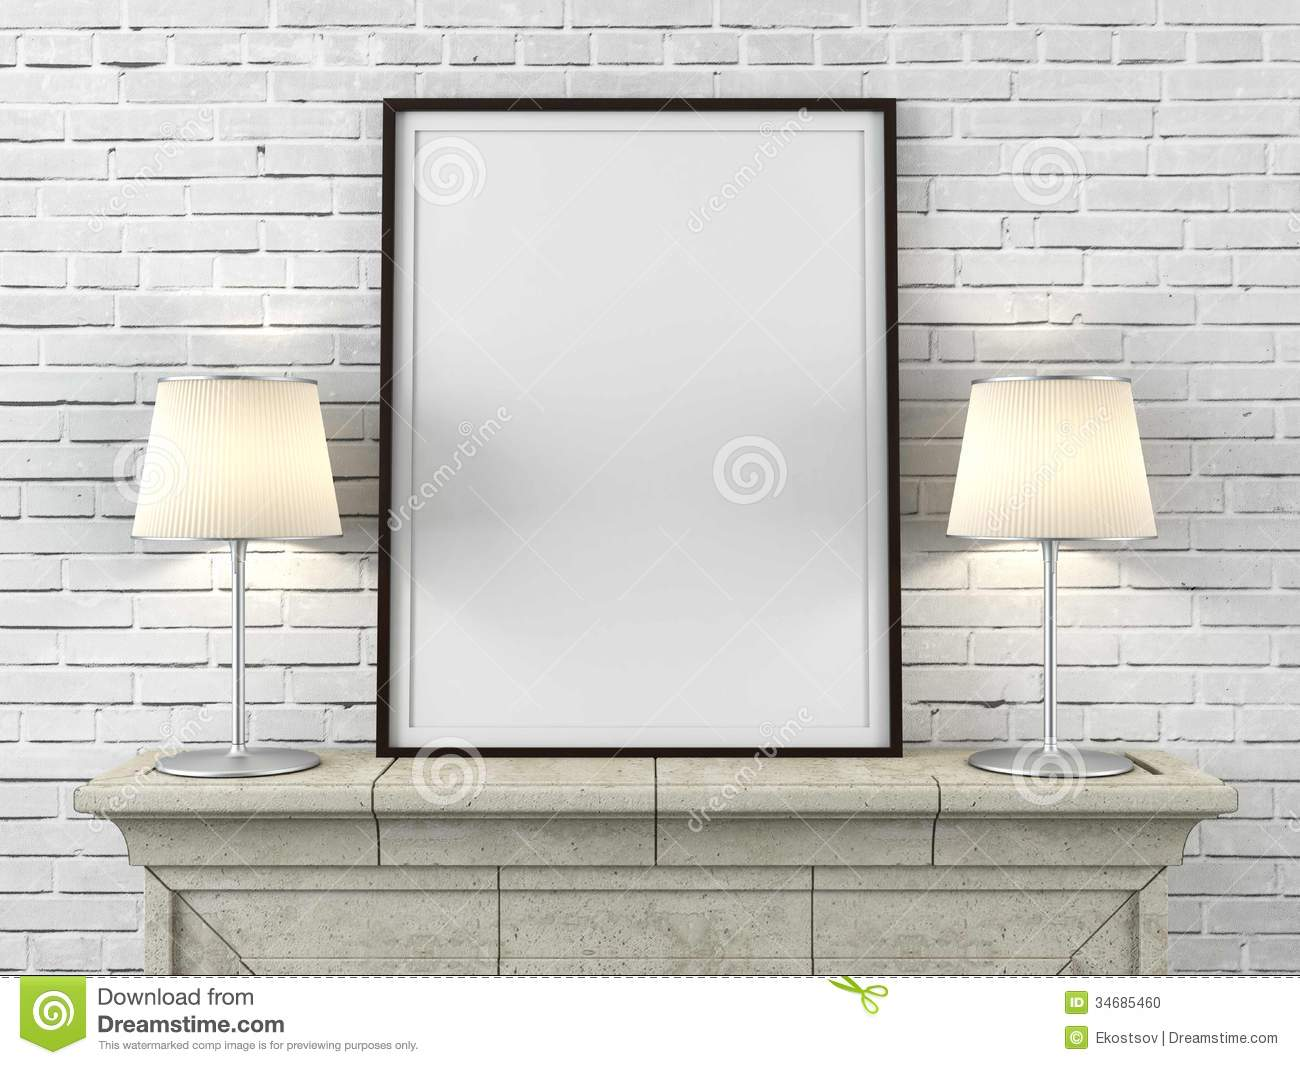 Wooden Picture Frame With Lamps Stock Photo - Image: 34685460